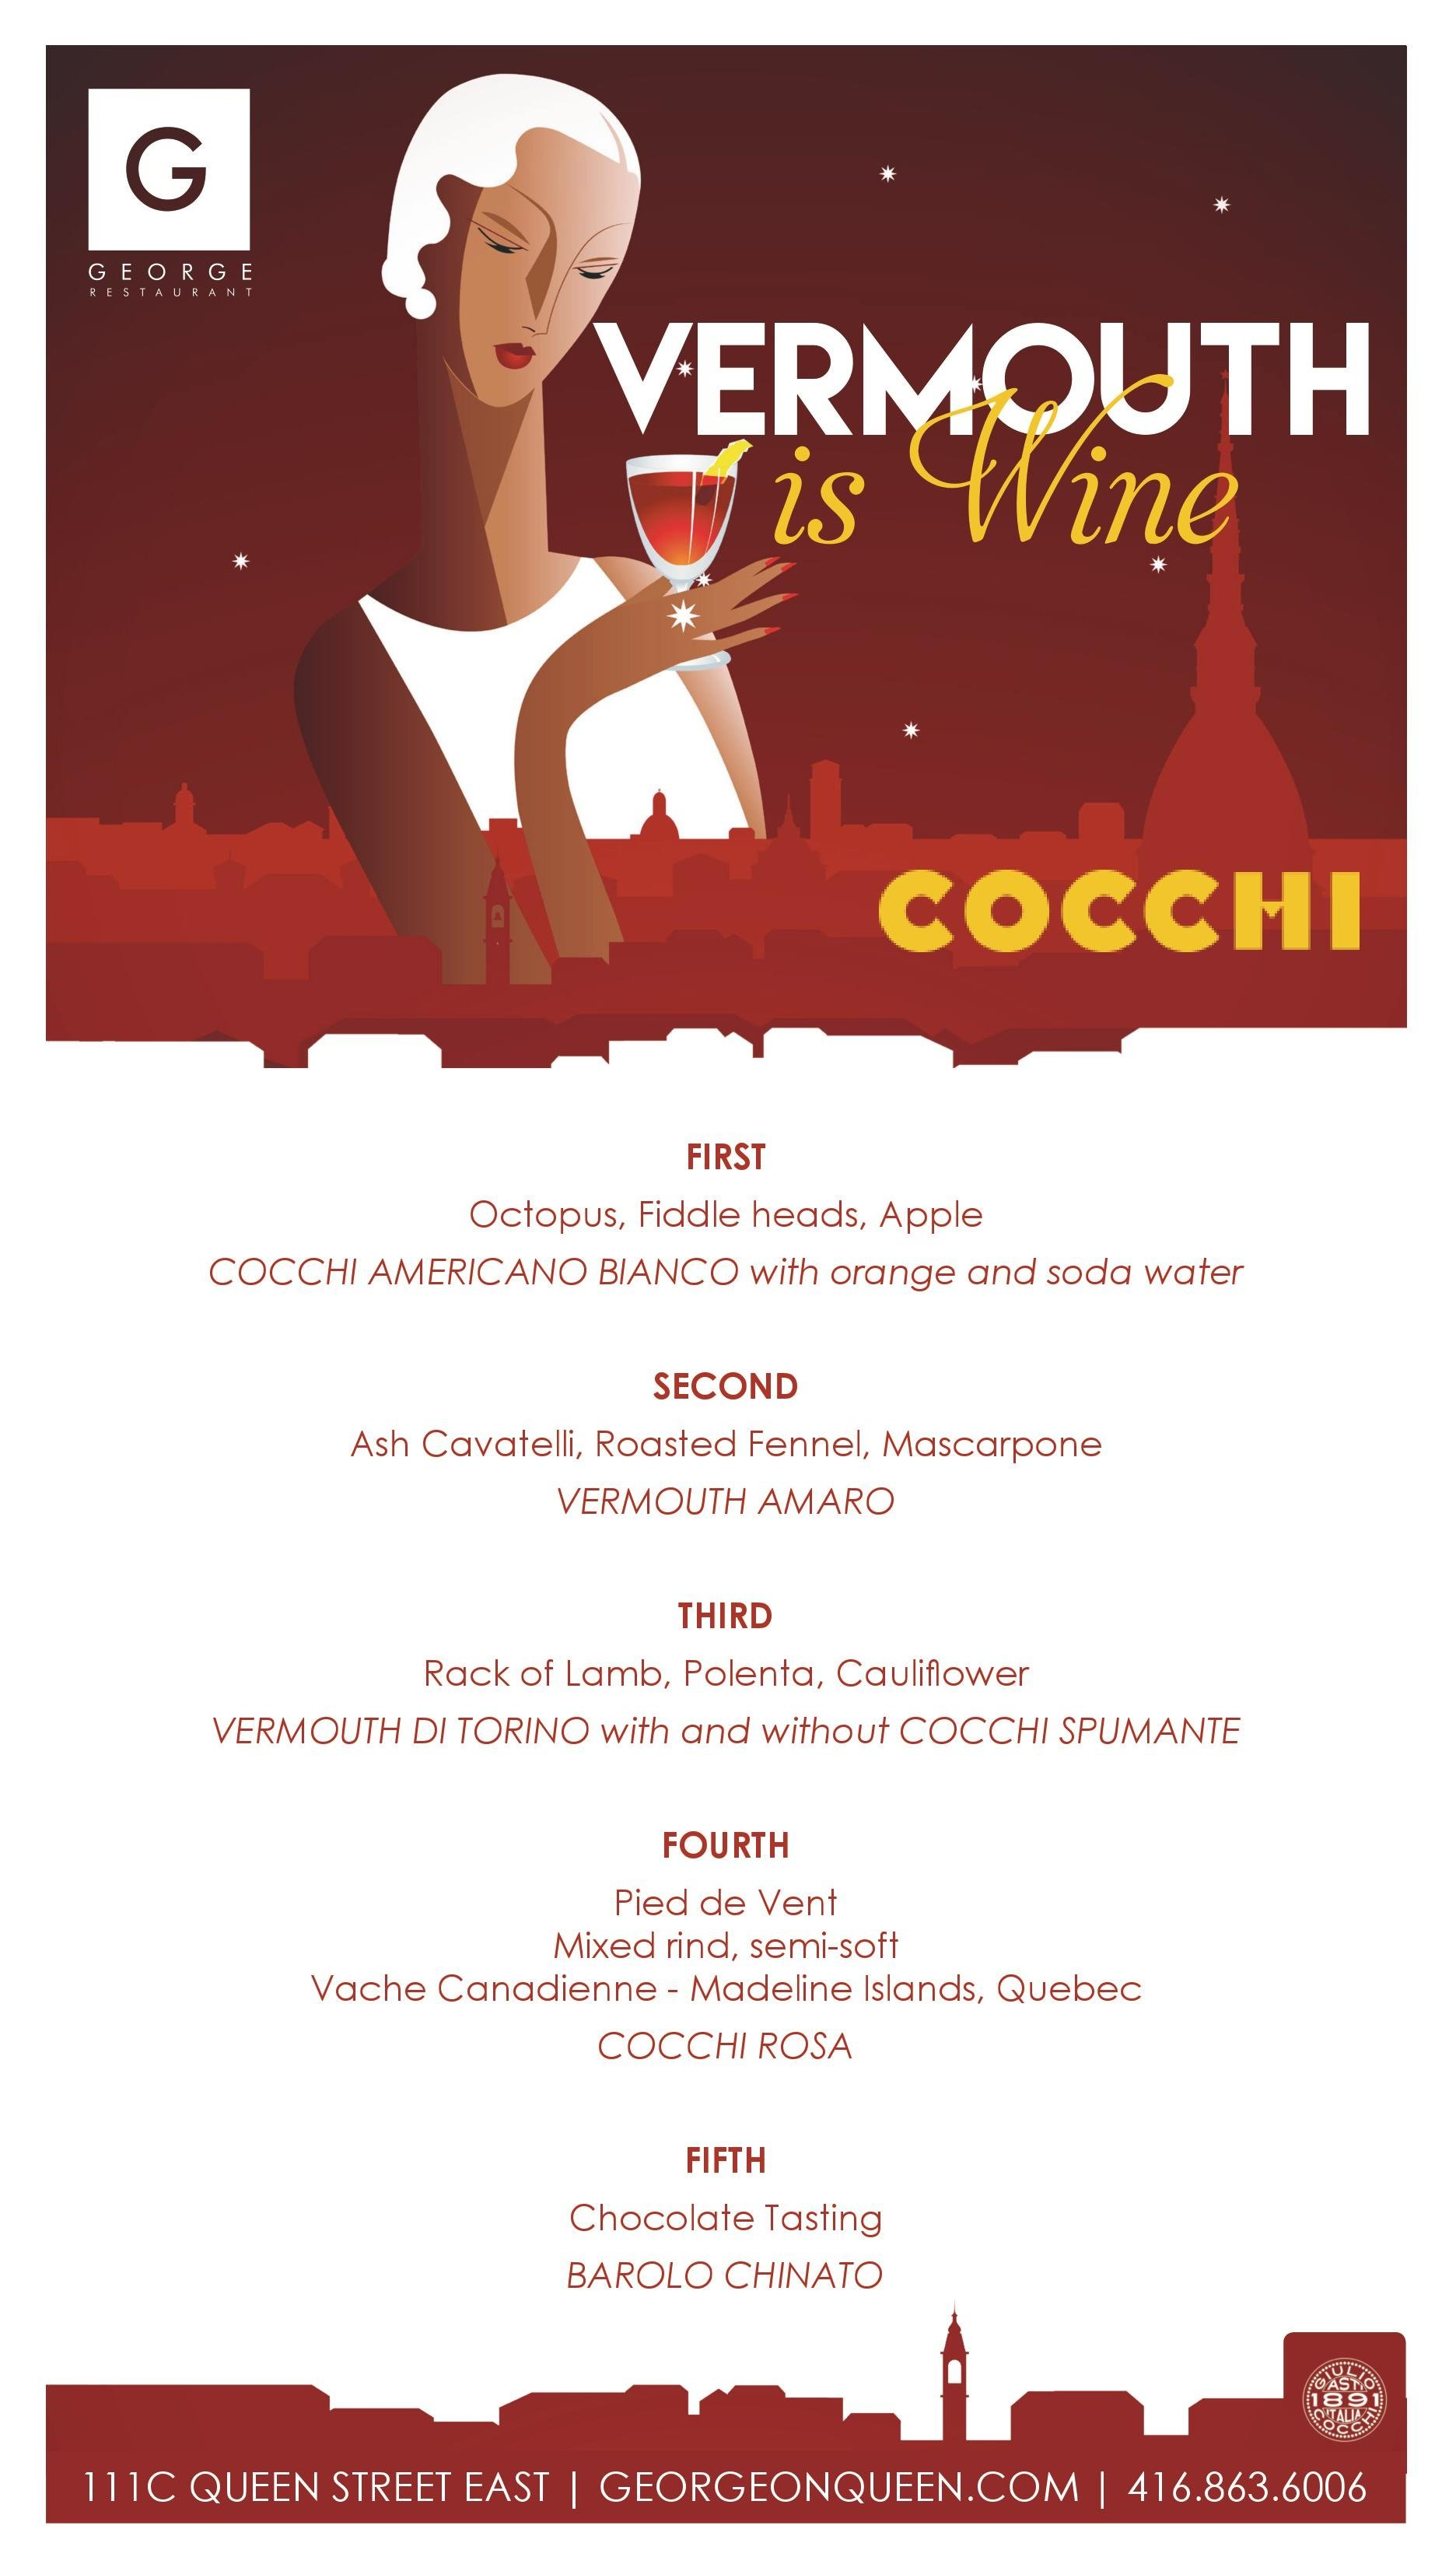 Vermouth is Wine - The Concept Dinner - Giulio Cocchi